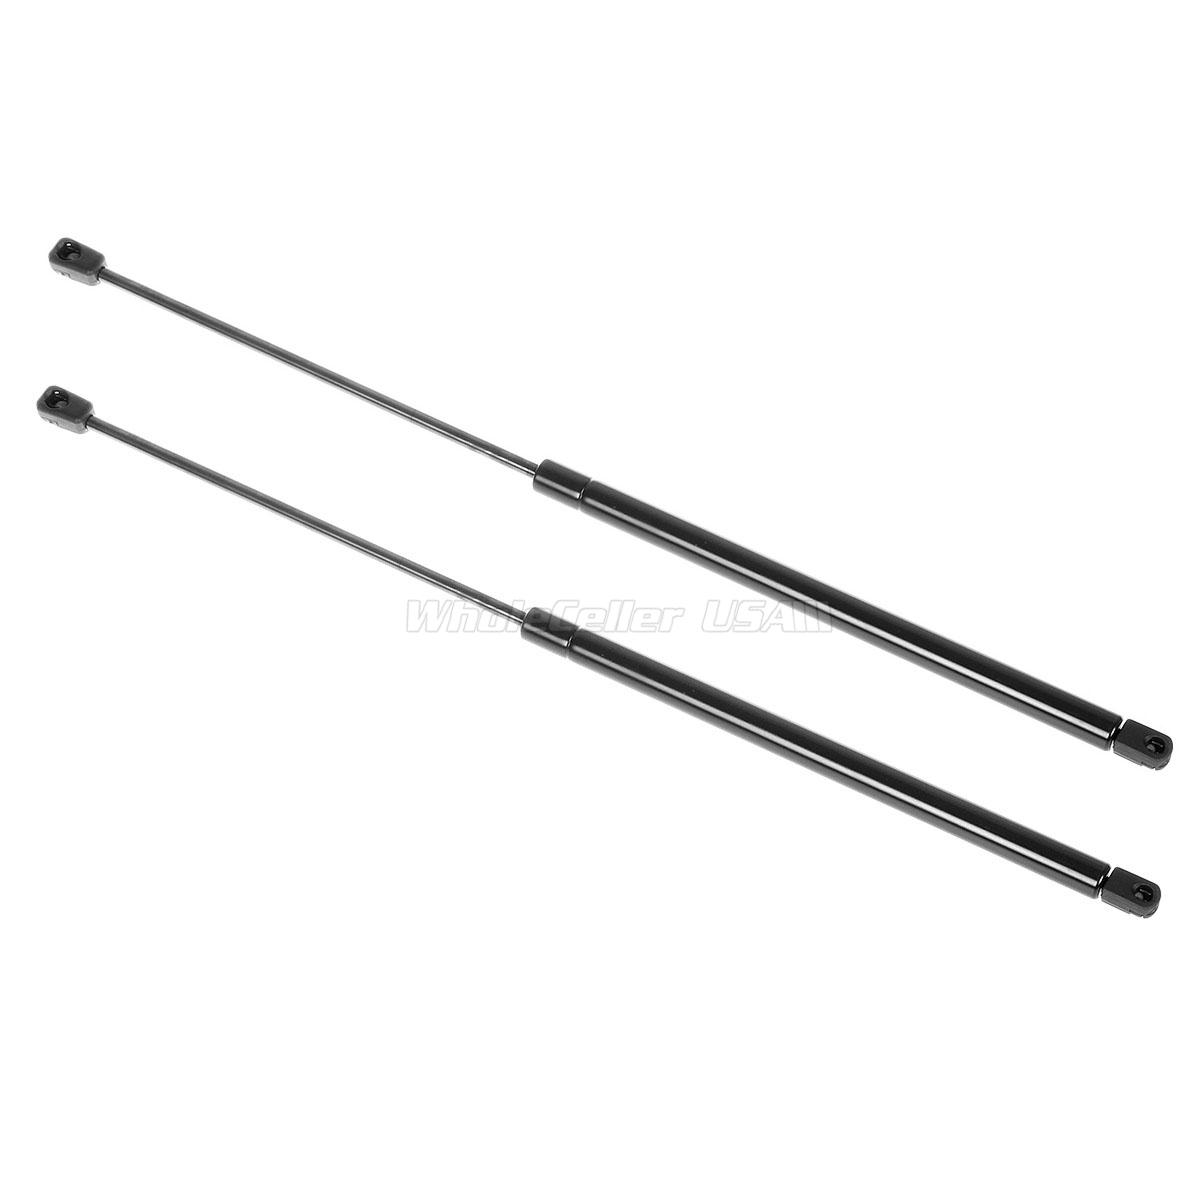 Qty 2 Front Hood Gas Charged Lift Support Struts For